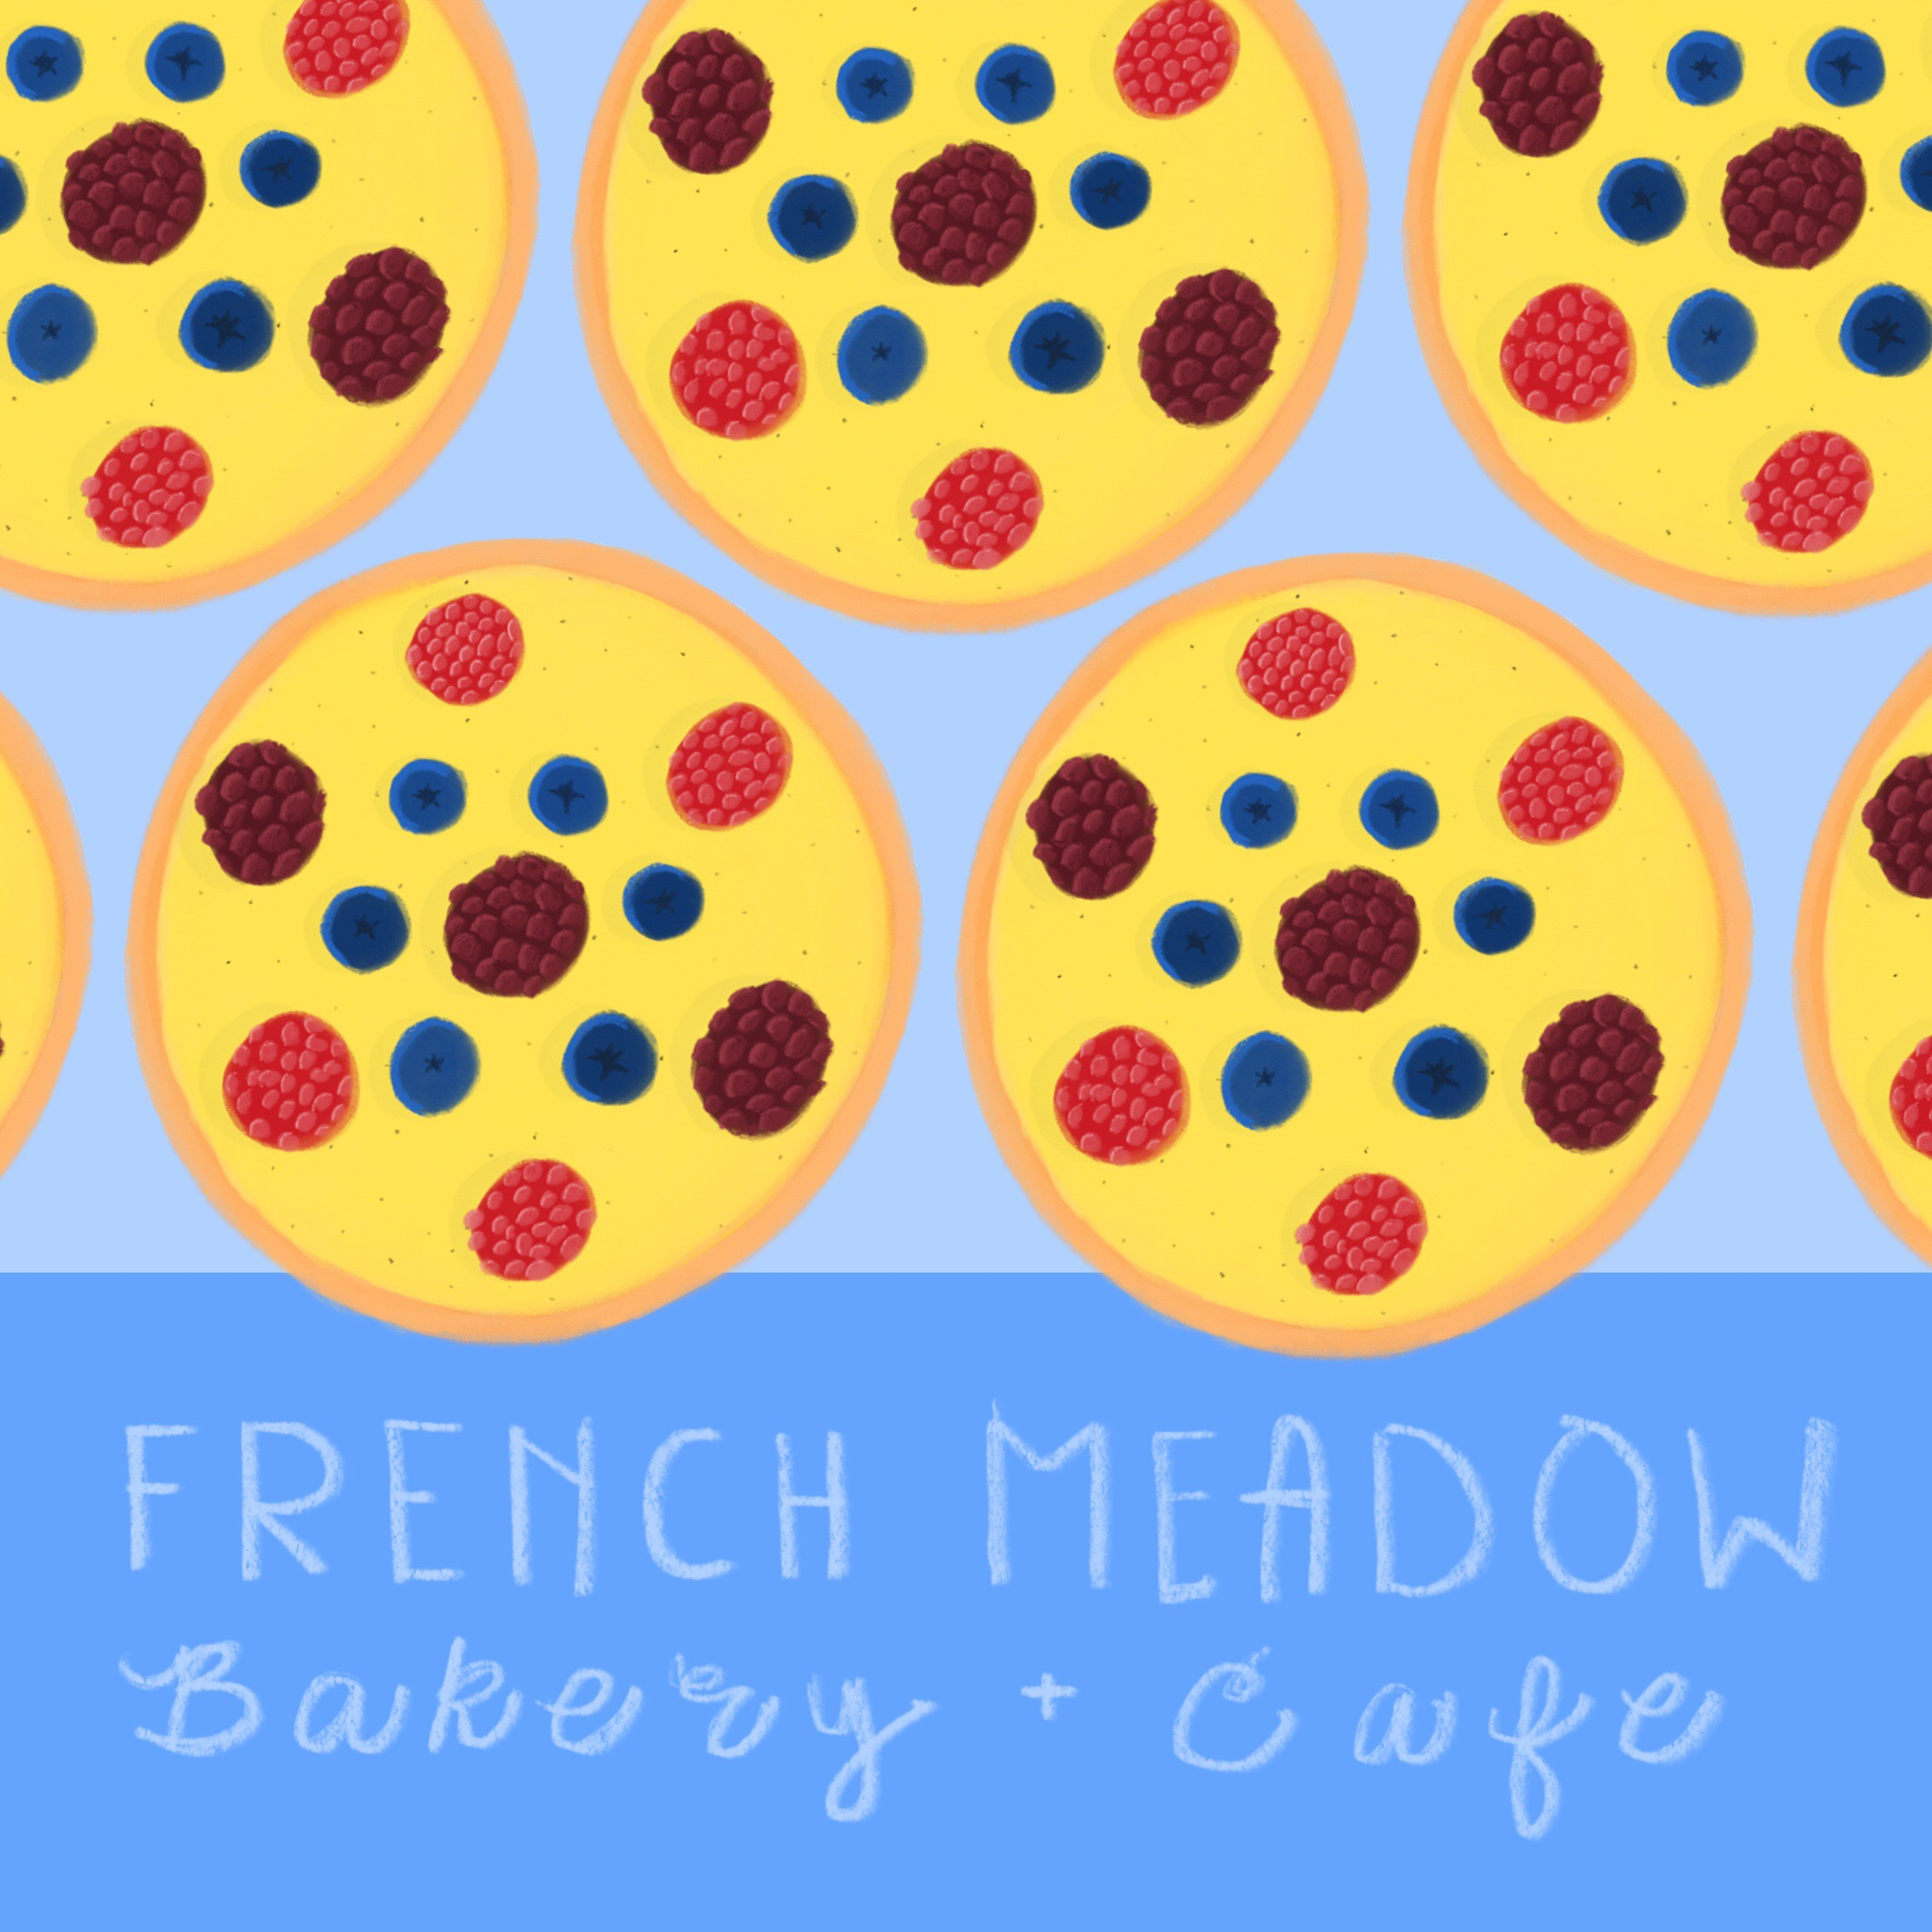 19_-_French_Meadow_Bakery_&_Cafe.jpg